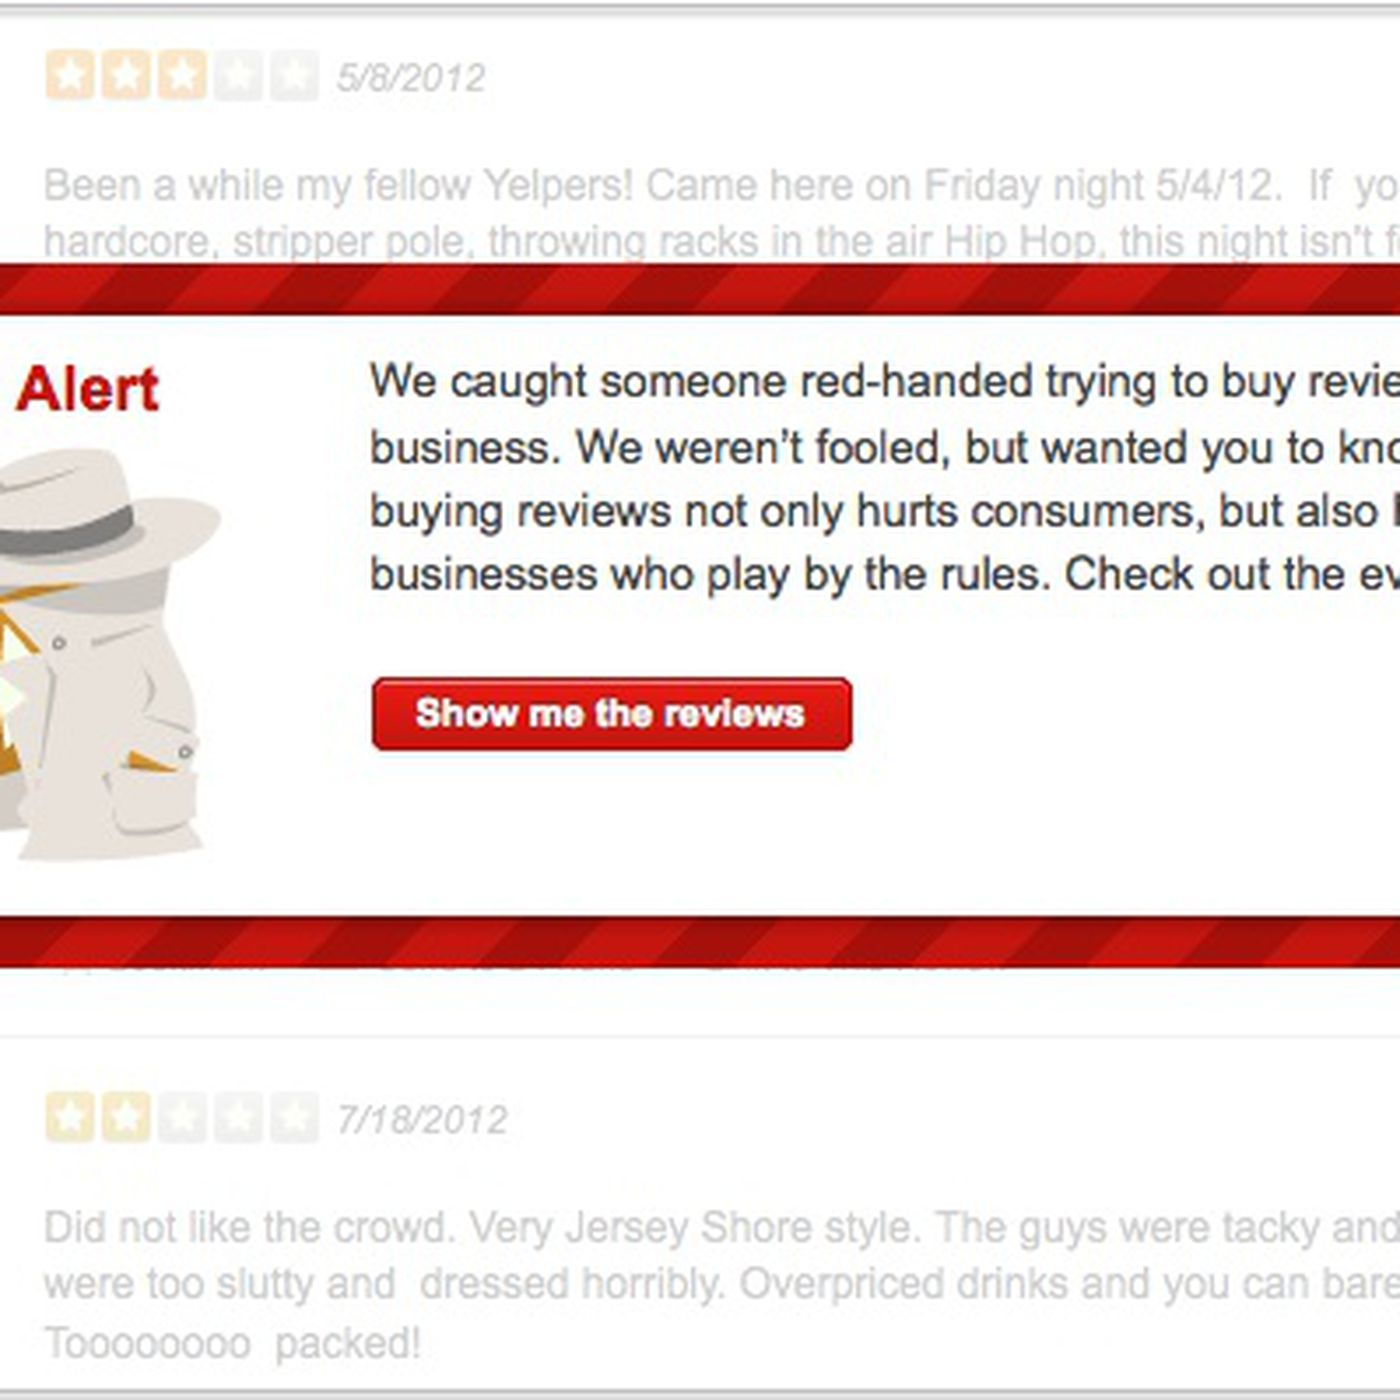 Yelp Cracking Down on Businesses That Buy Fake Reviews - Eater